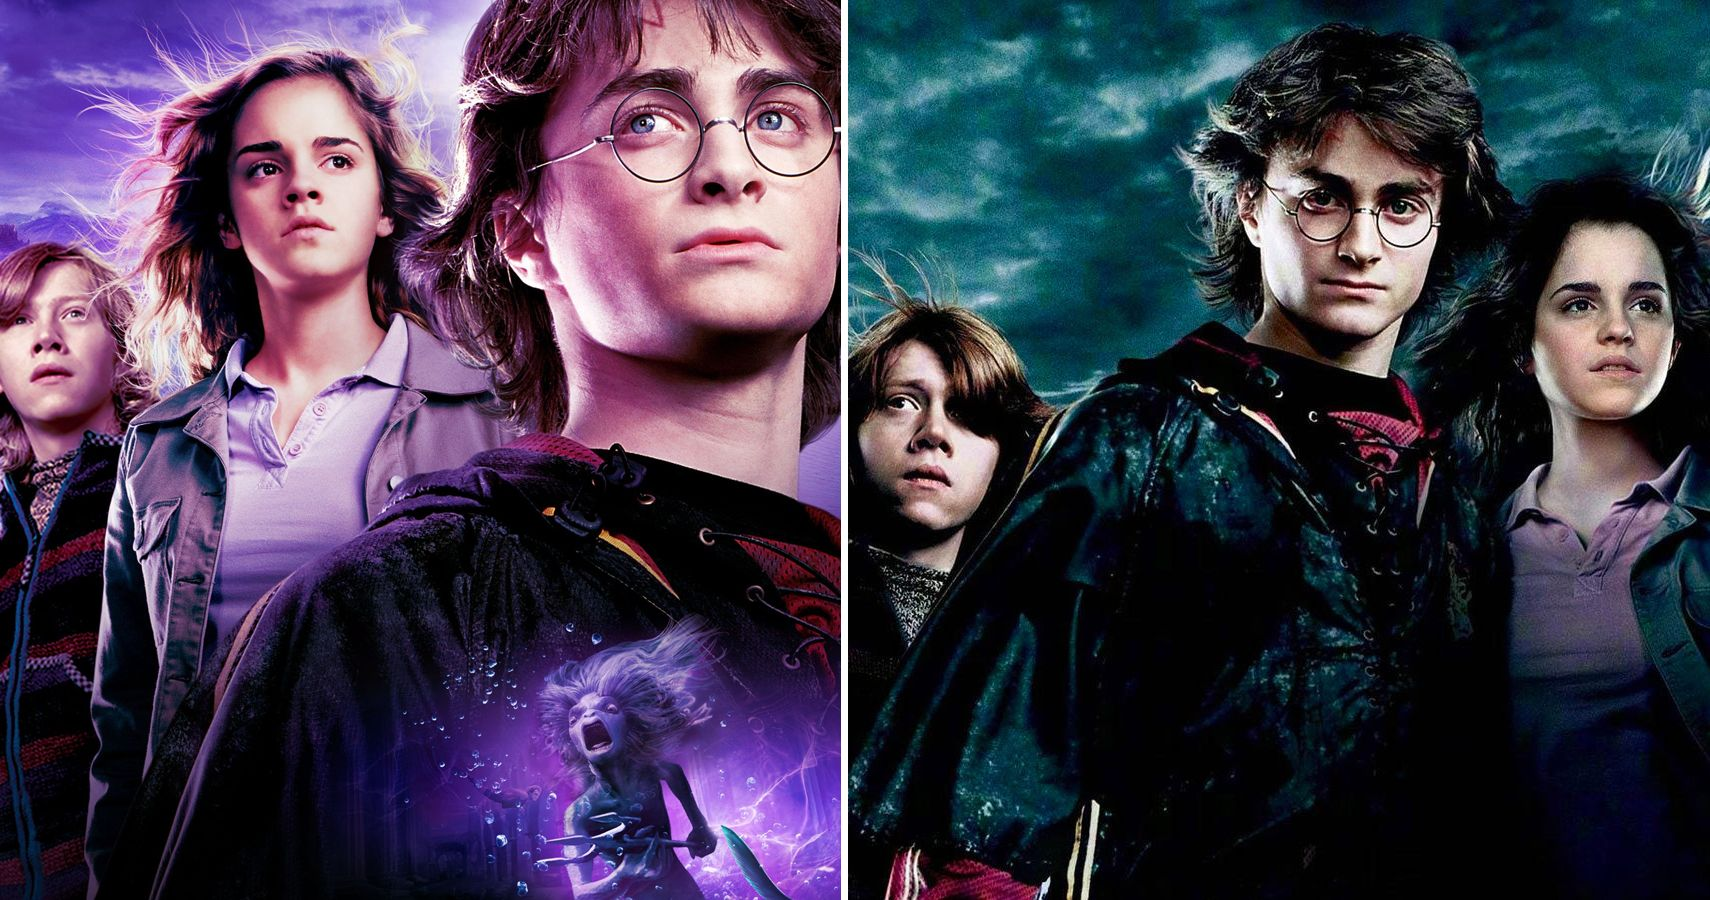 Harry Potter And The Goblet Of Fire 10 Things Left Out About The Quidditch World Cup